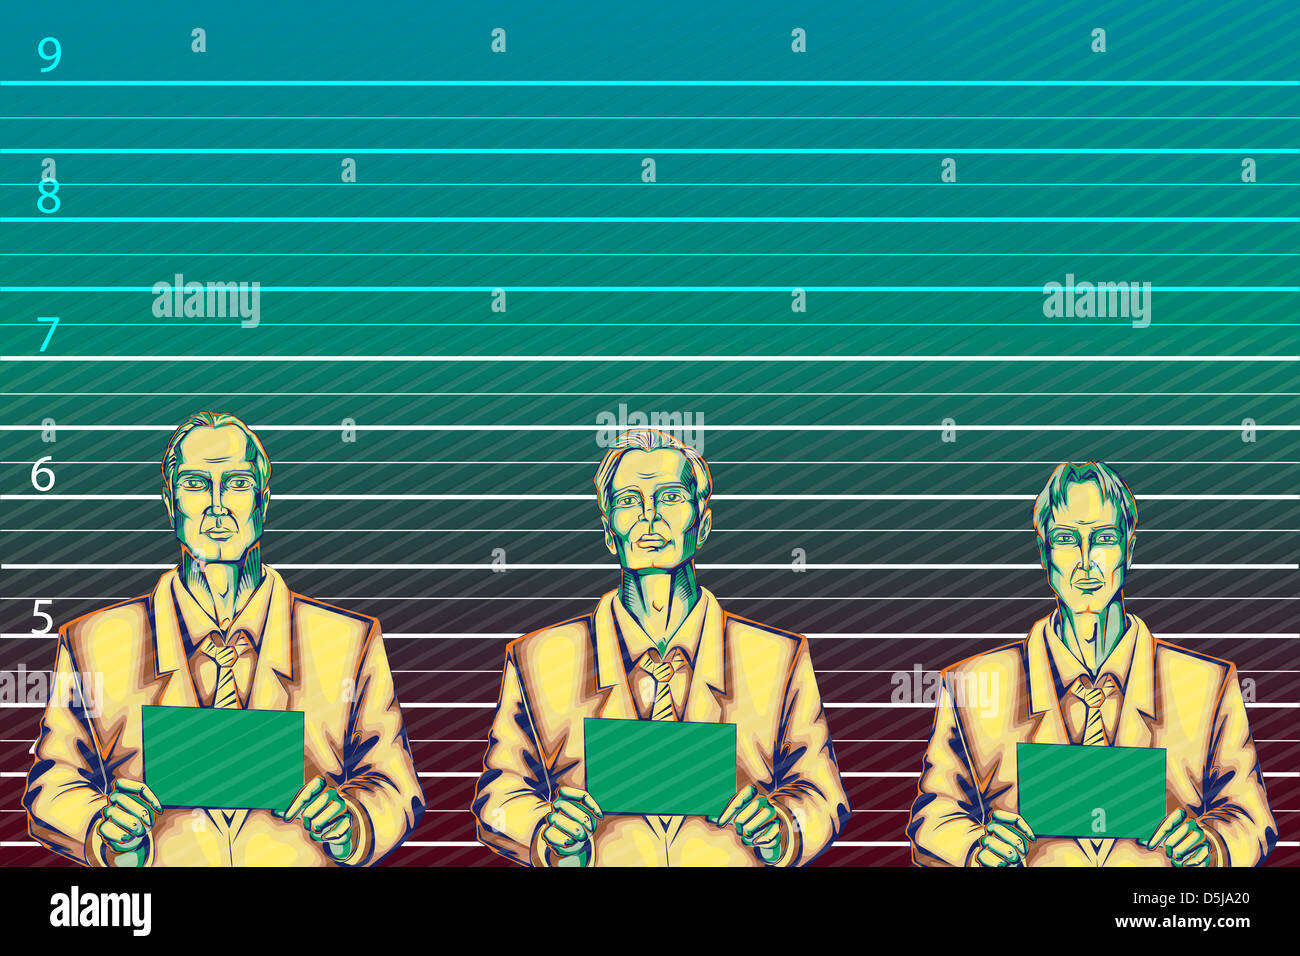 Illustrative image of businessmen standing against height chart representing business crime - Stock Image